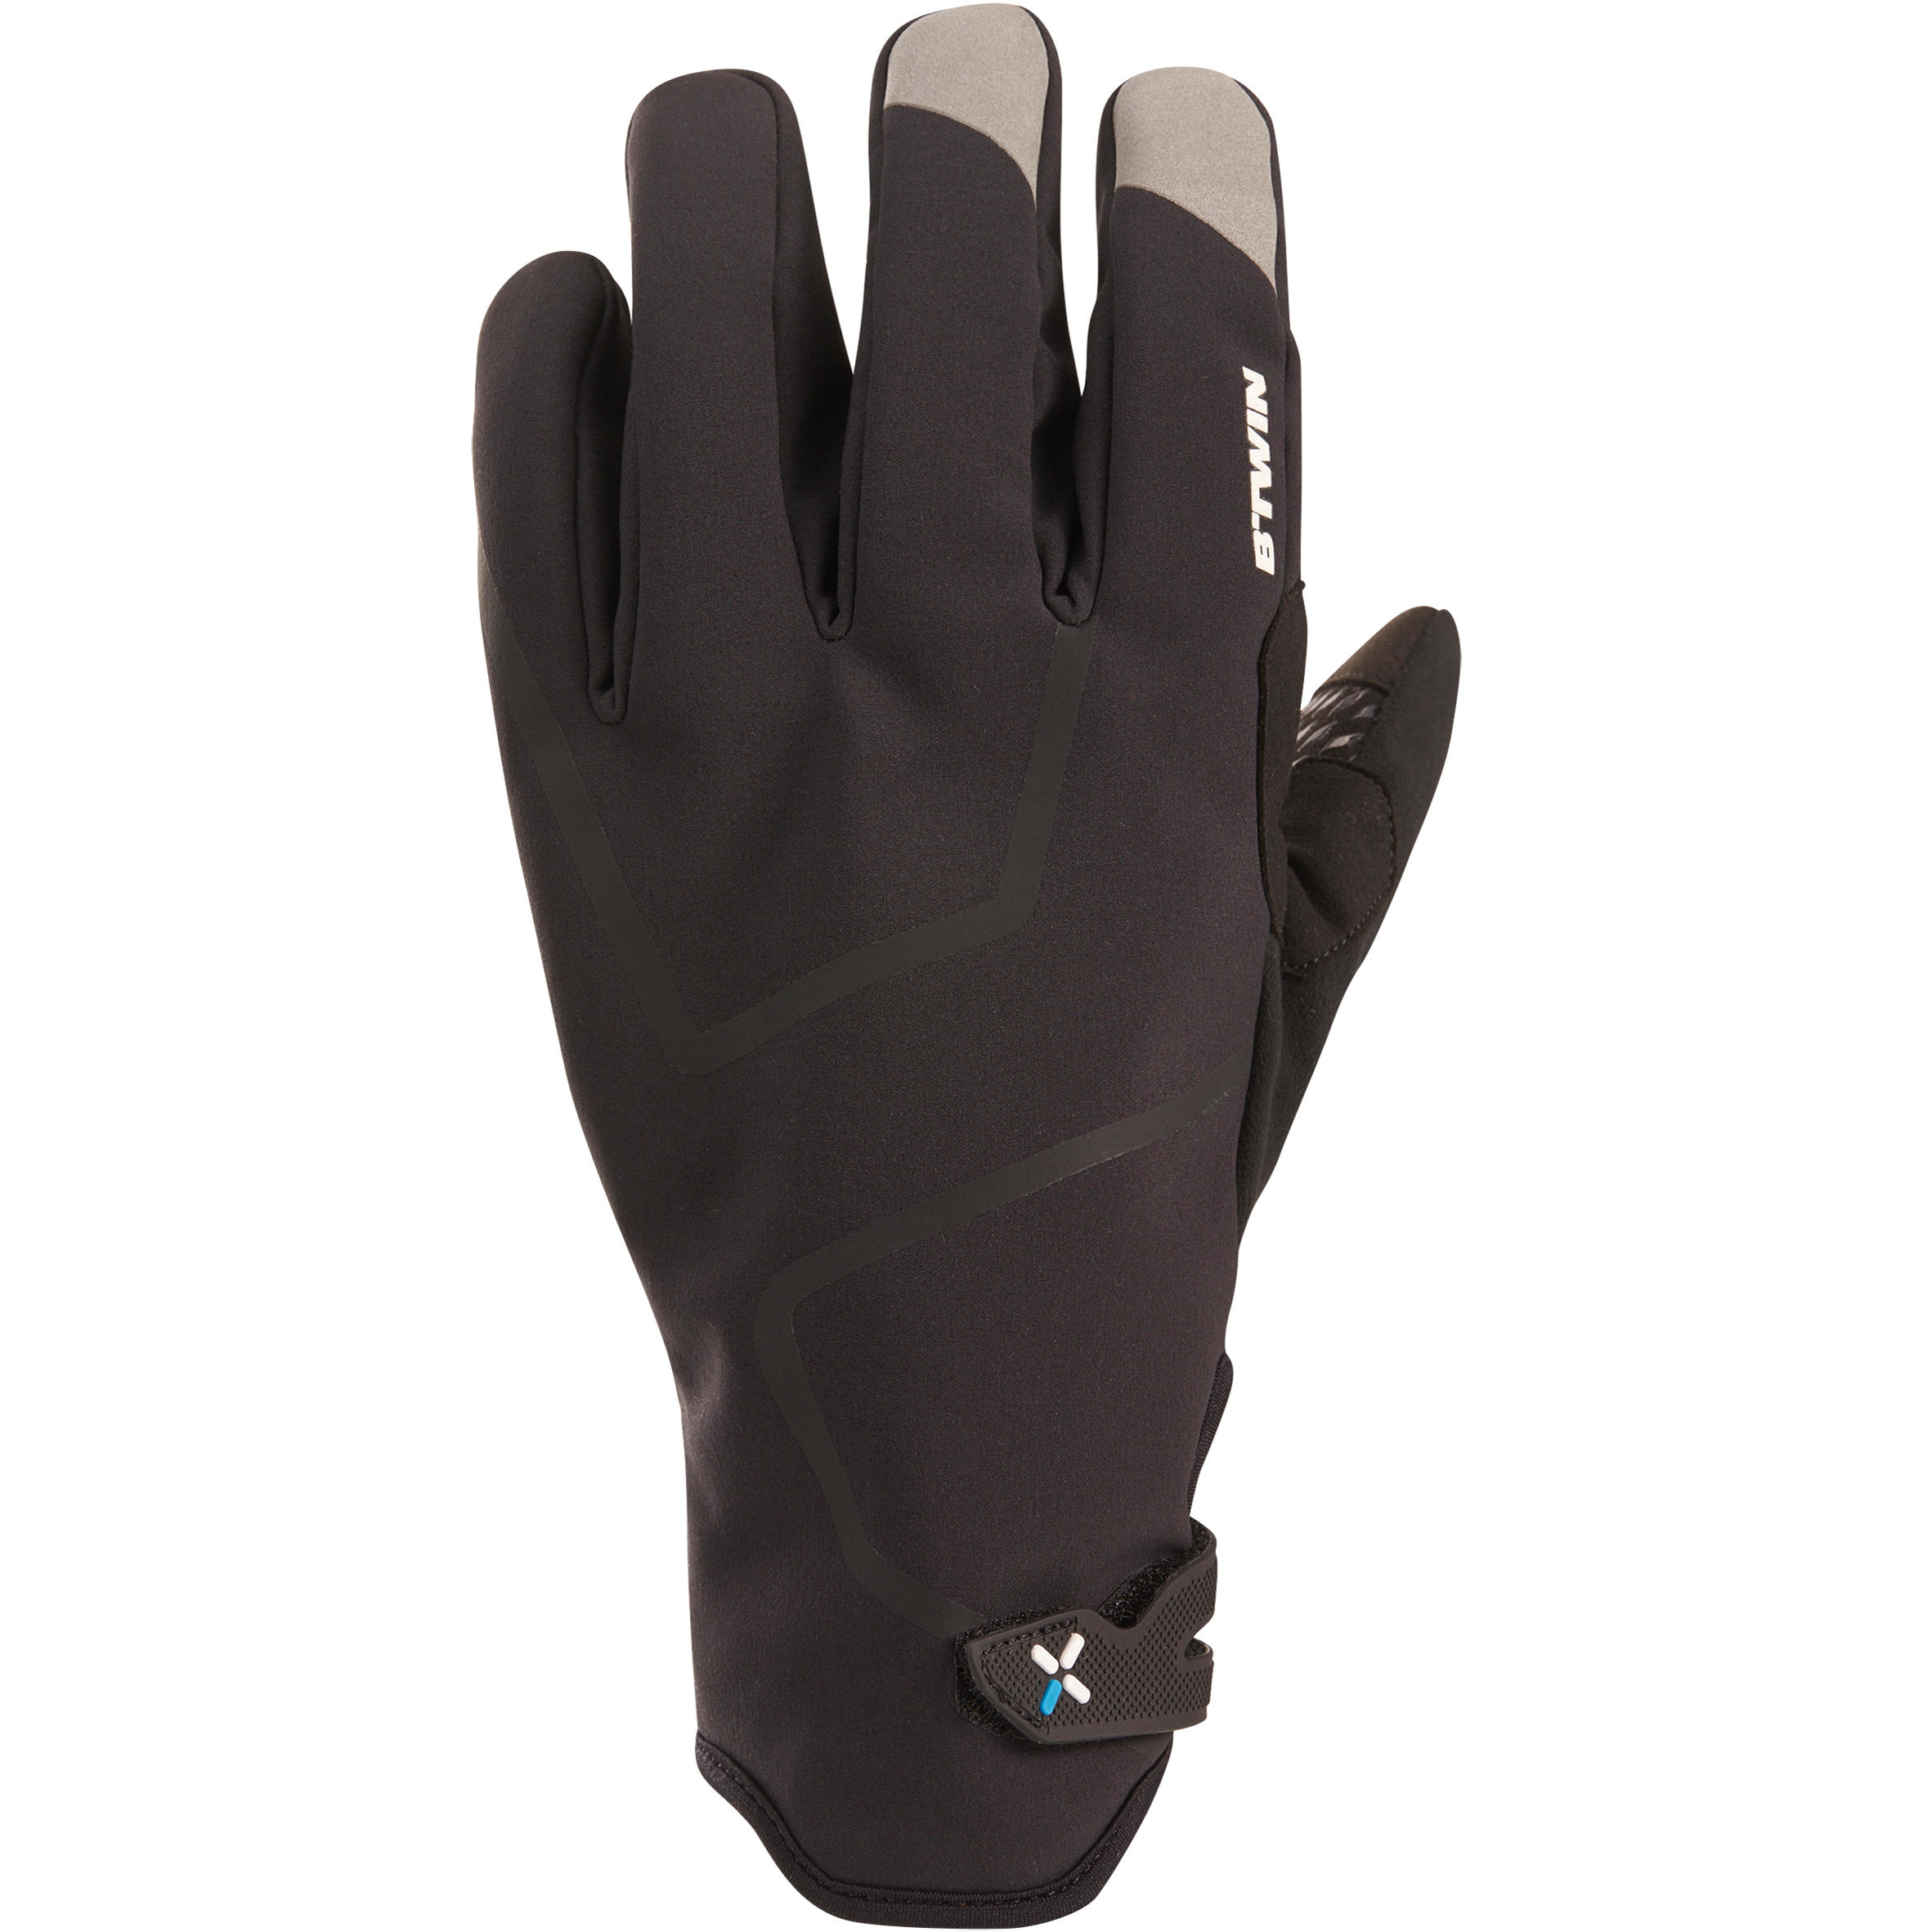 700 Winter Cycling Gloves - Black